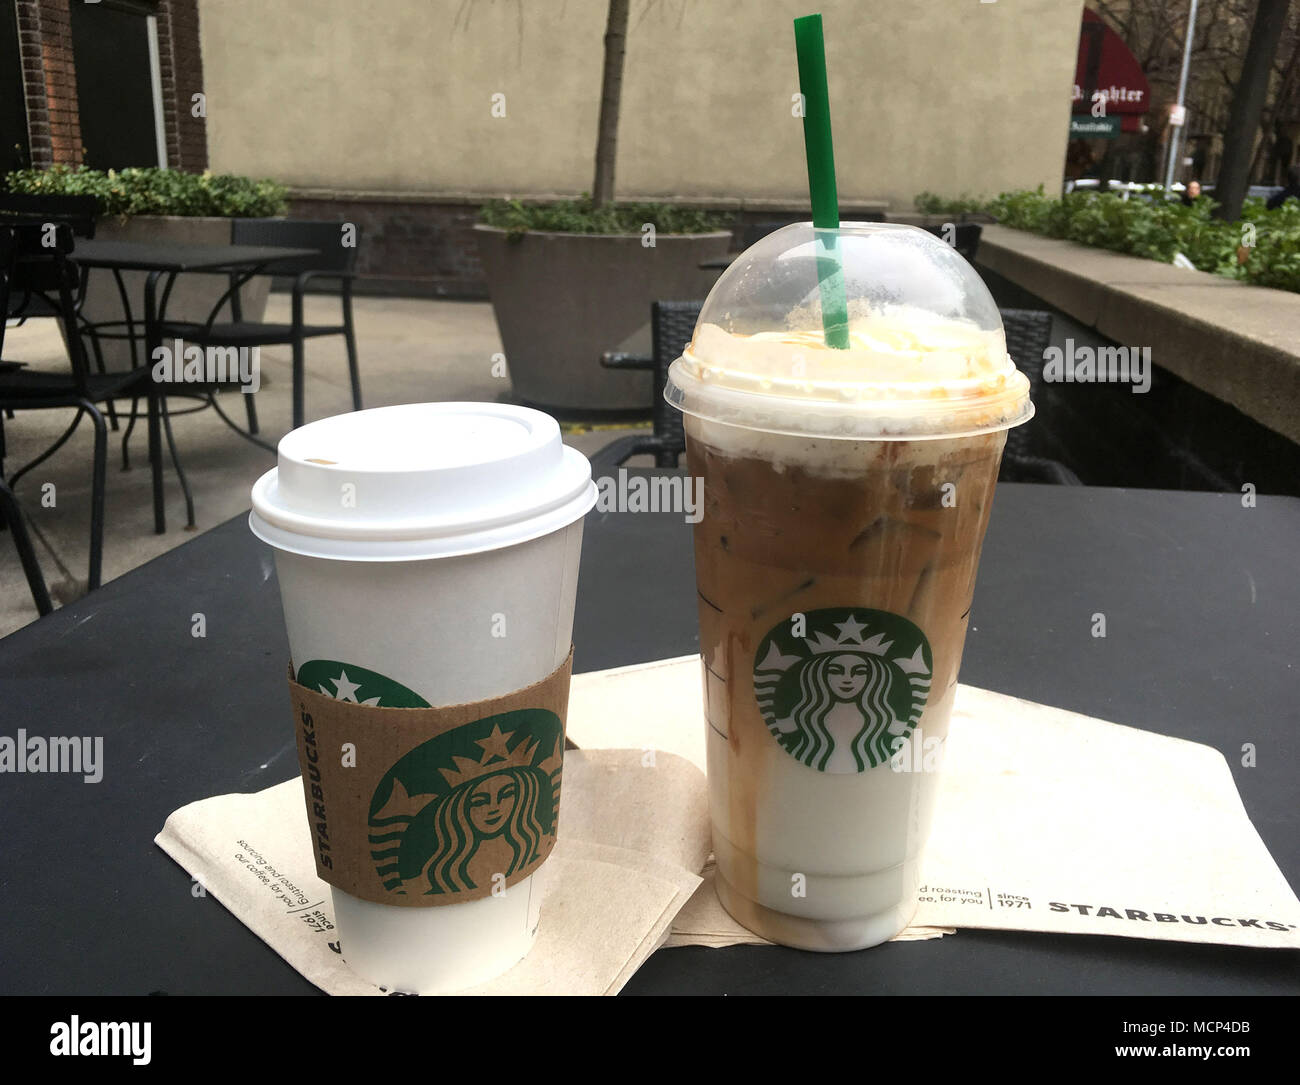 A View Of Starbucks Black Coffee And Iced Caramel Macchiato After It Was Announced That Will Close 8000 Stores For An